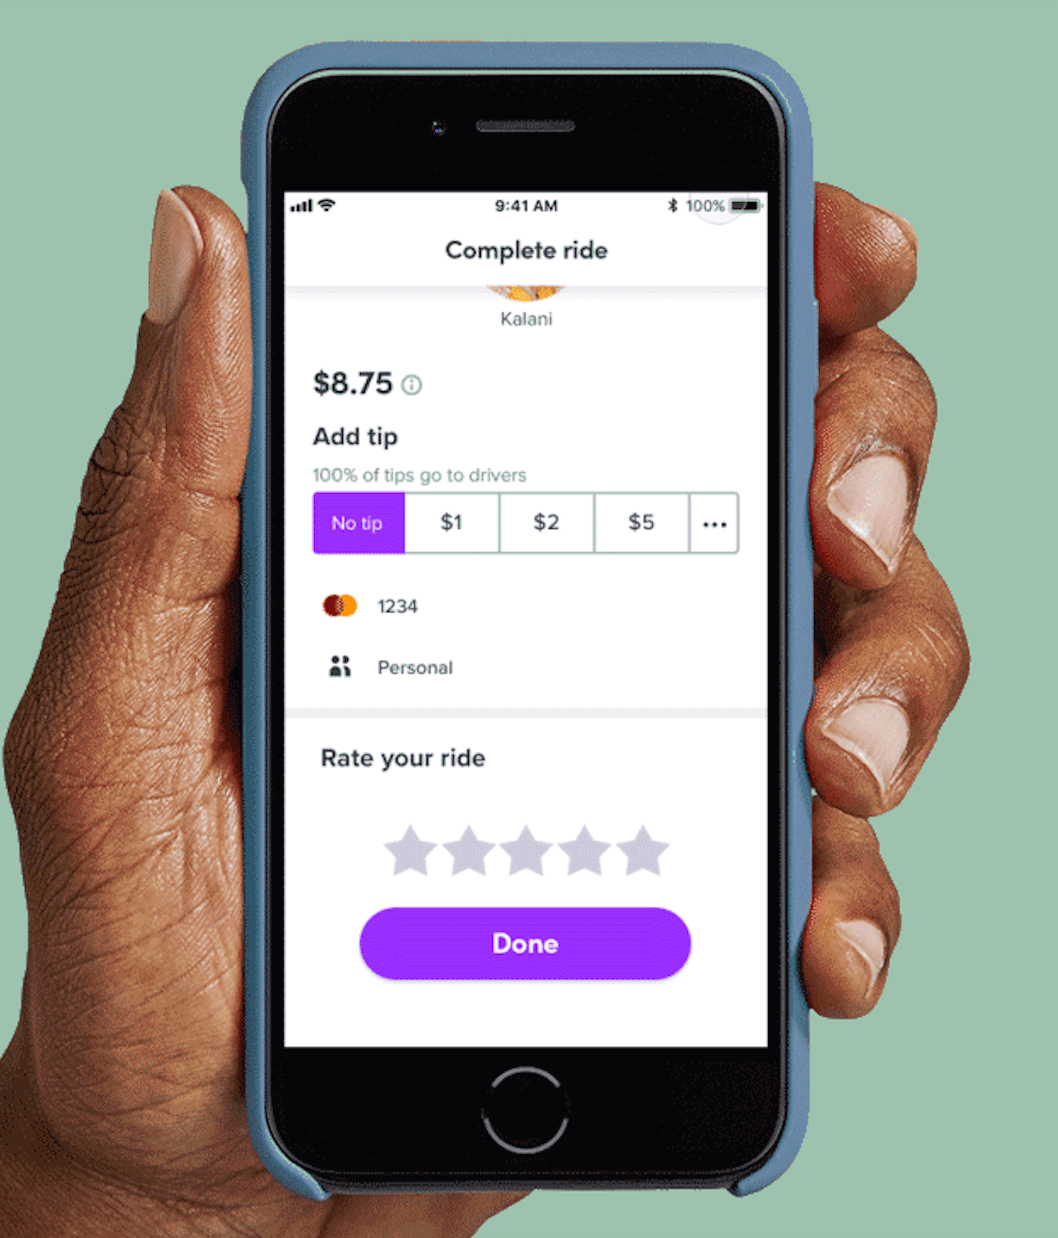 Customer service feedback survey from Lyft once users have completed a ride.